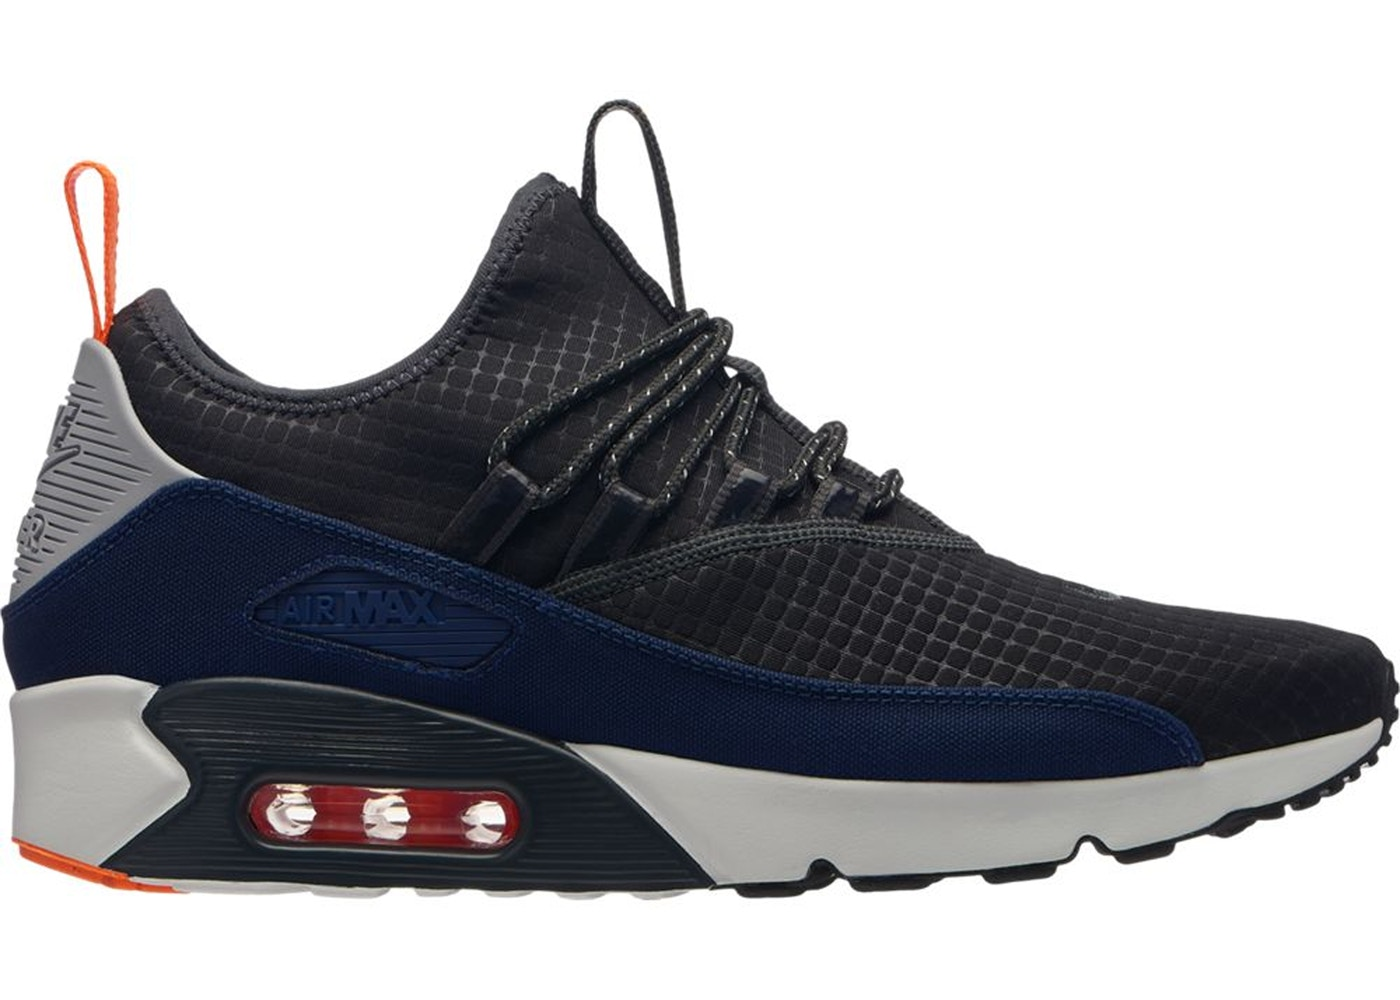 half off e2540 ff9b4 Buy Nike Air Max 90 Shoes   Deadstock Sneakers